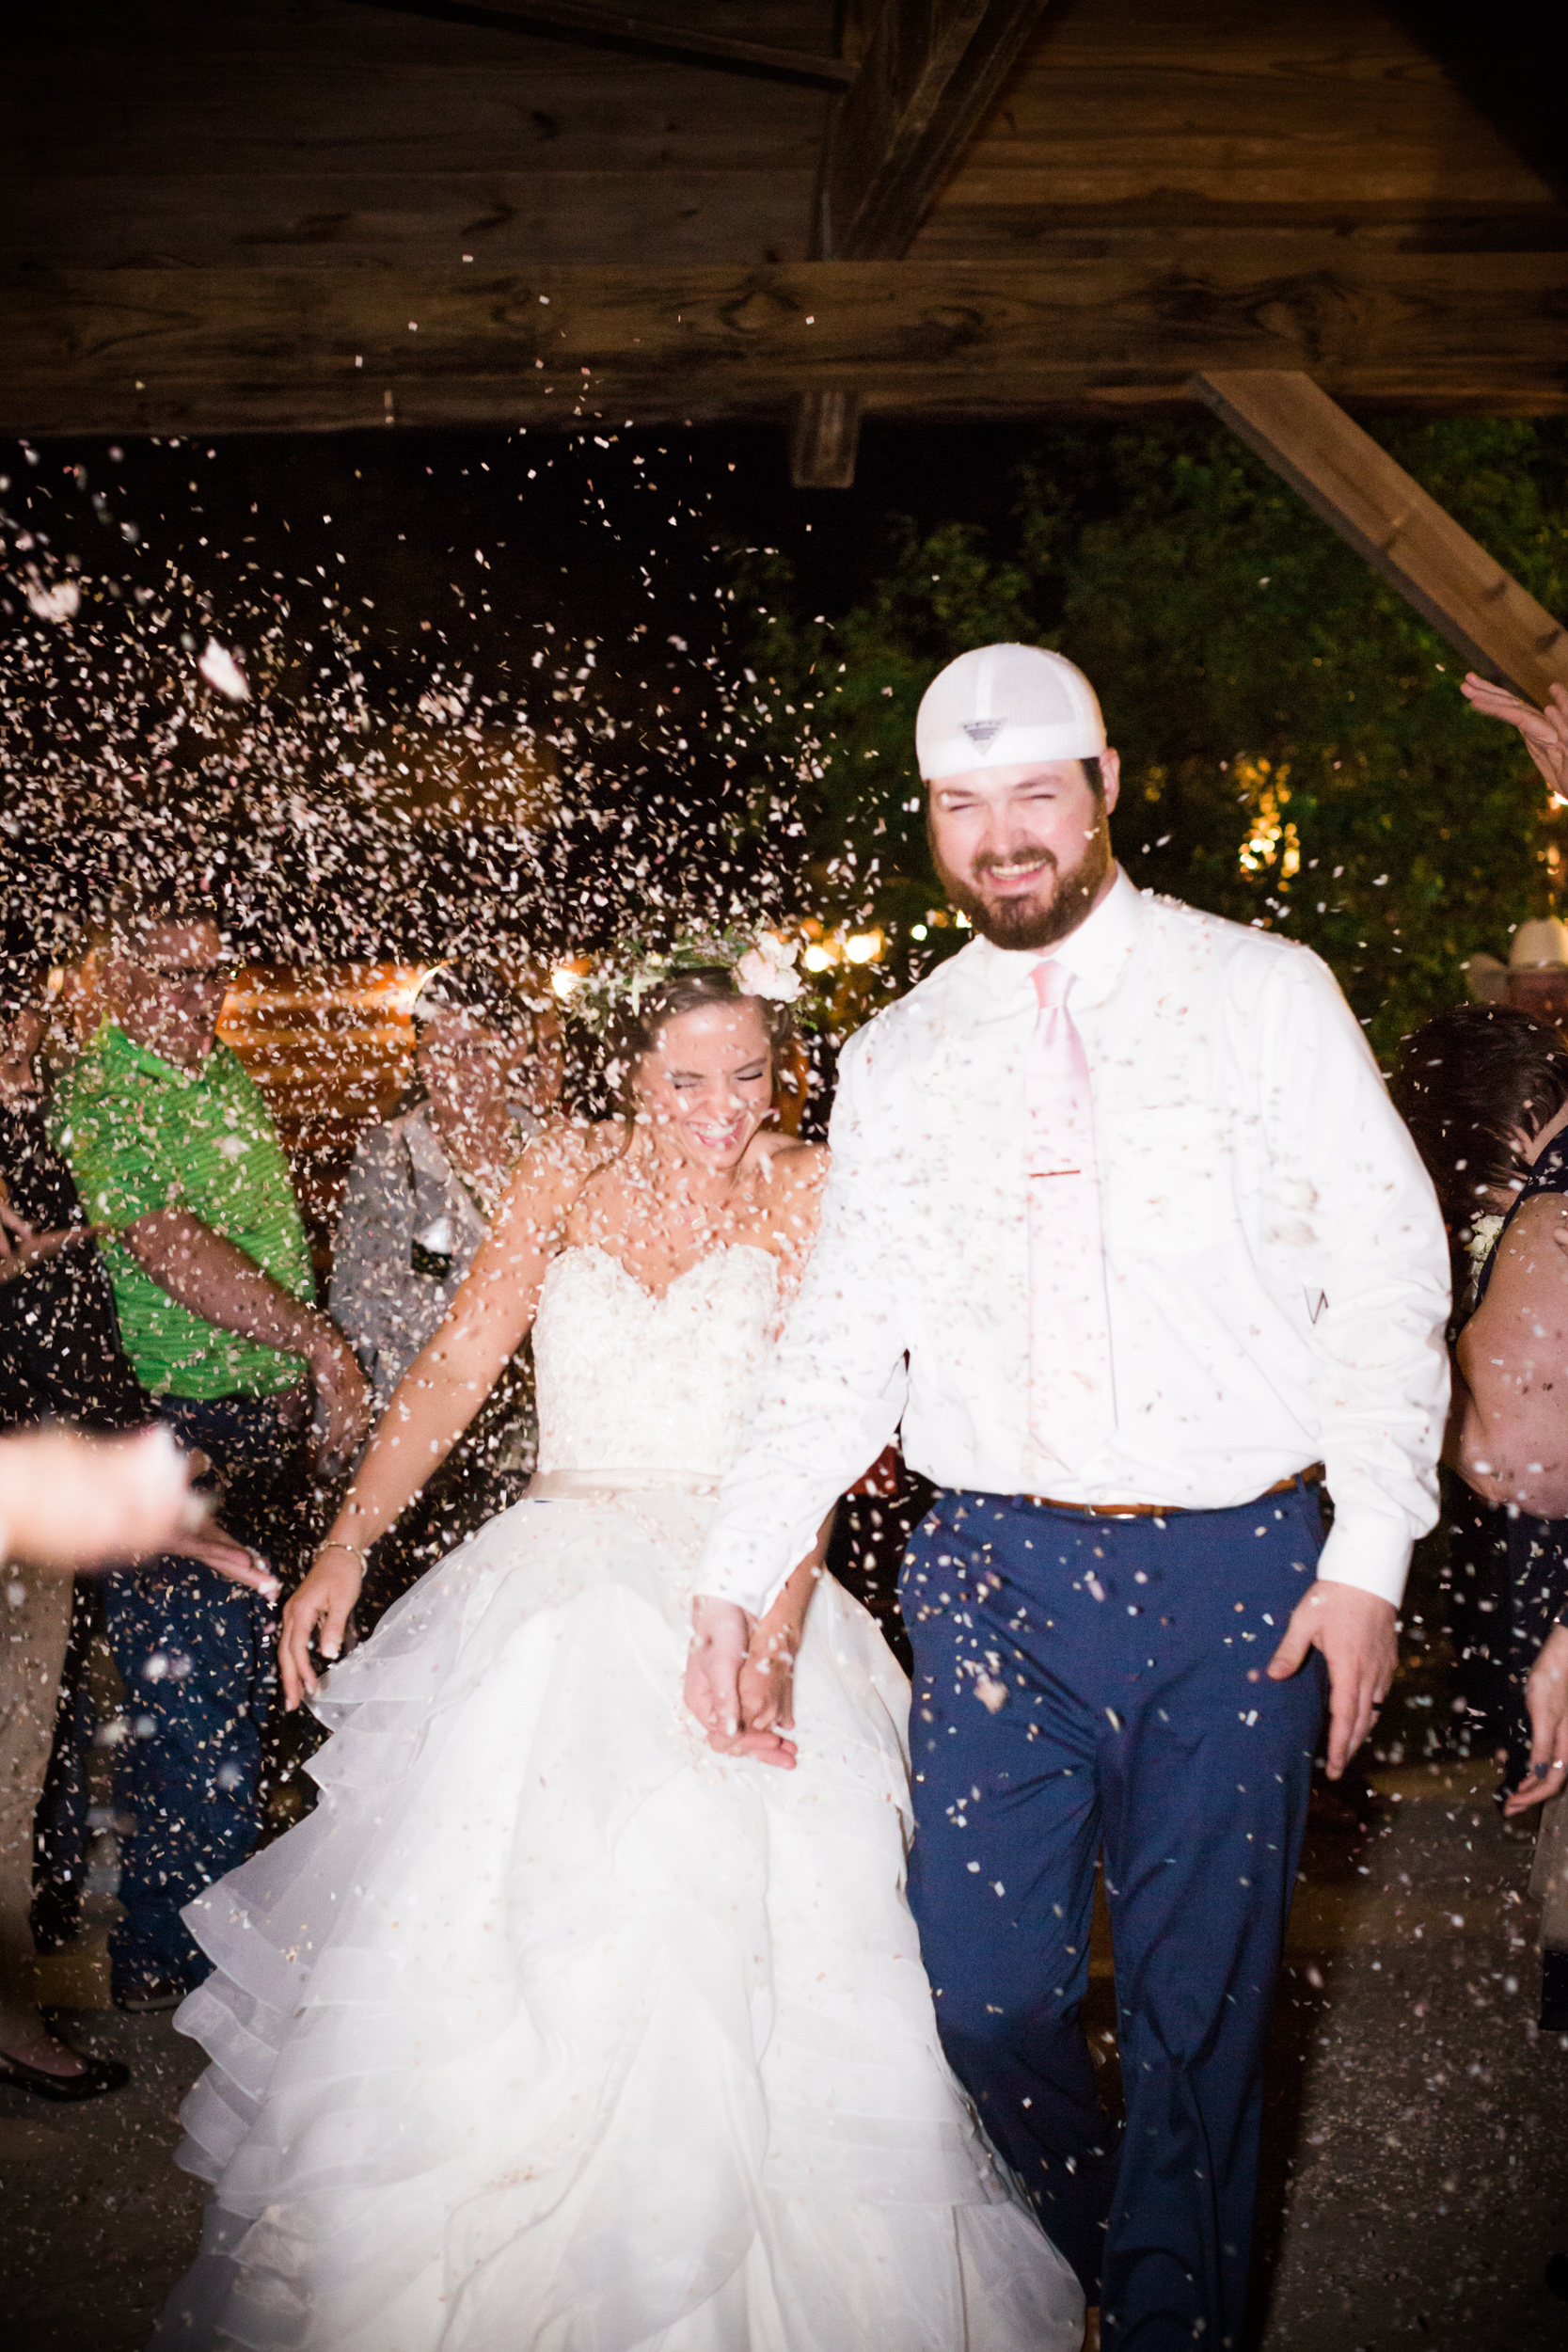 Hill Country Spring Wedding at Red Bud Hall | Austin Wedding Photographer | Film Wedding Photographer | Britni Dean Photography | Rainy Day Wedding Inspiration | confetti wedding exit